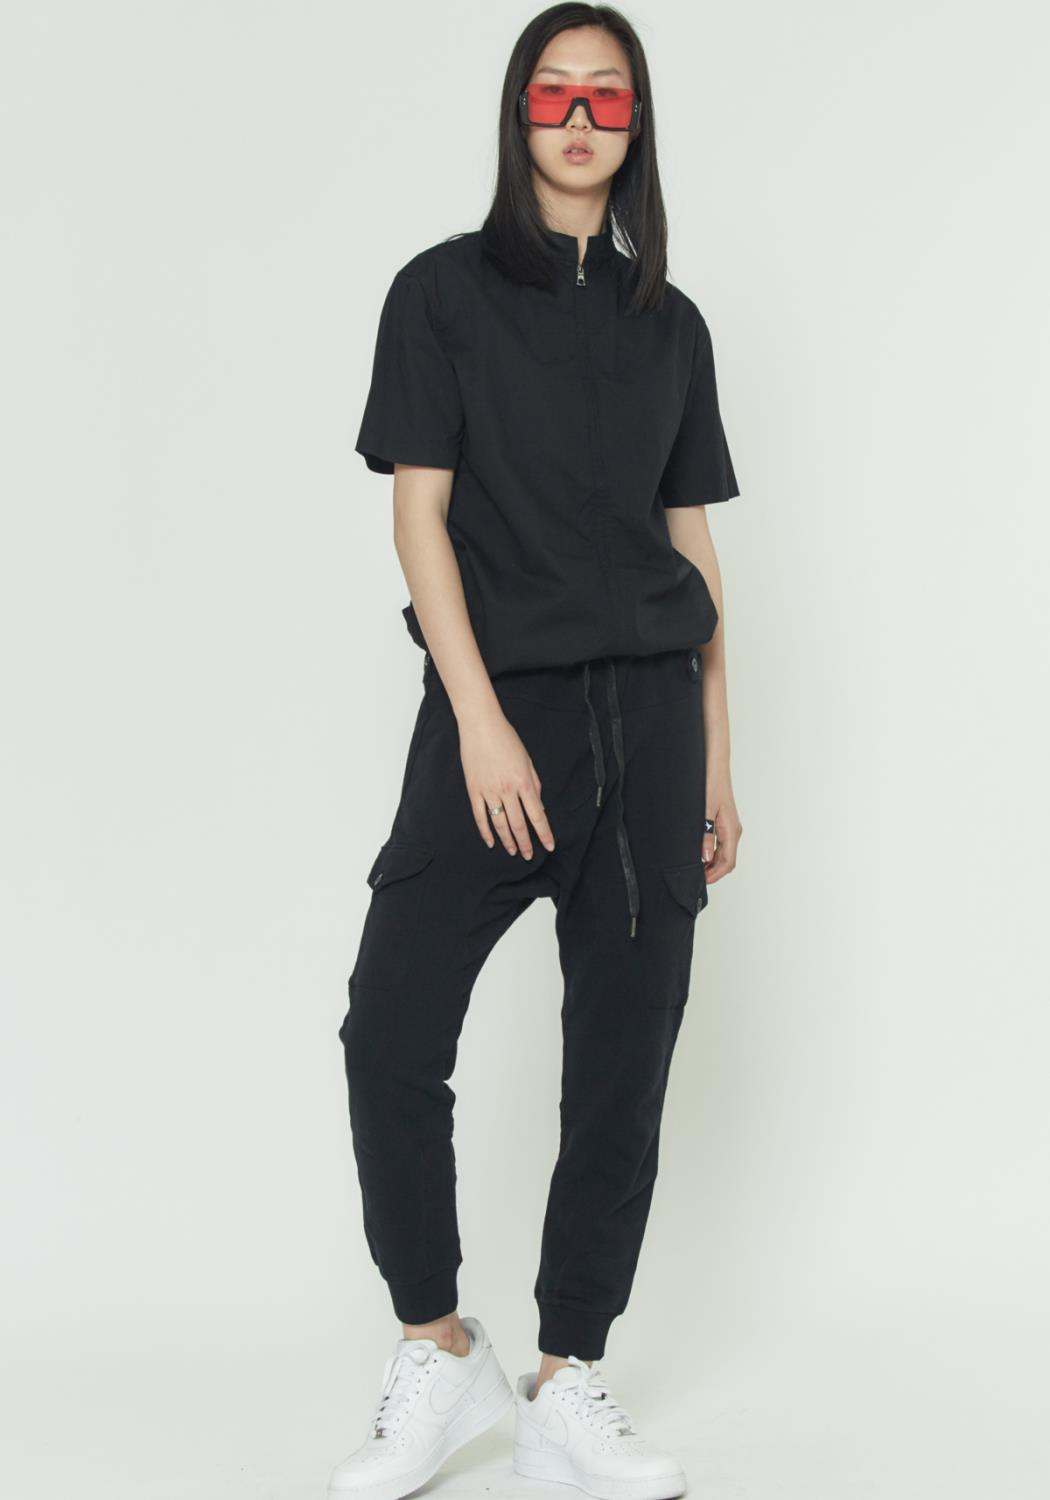 MENS DROP CROTCH SWEATPANTS WITH CARGO POCKETS